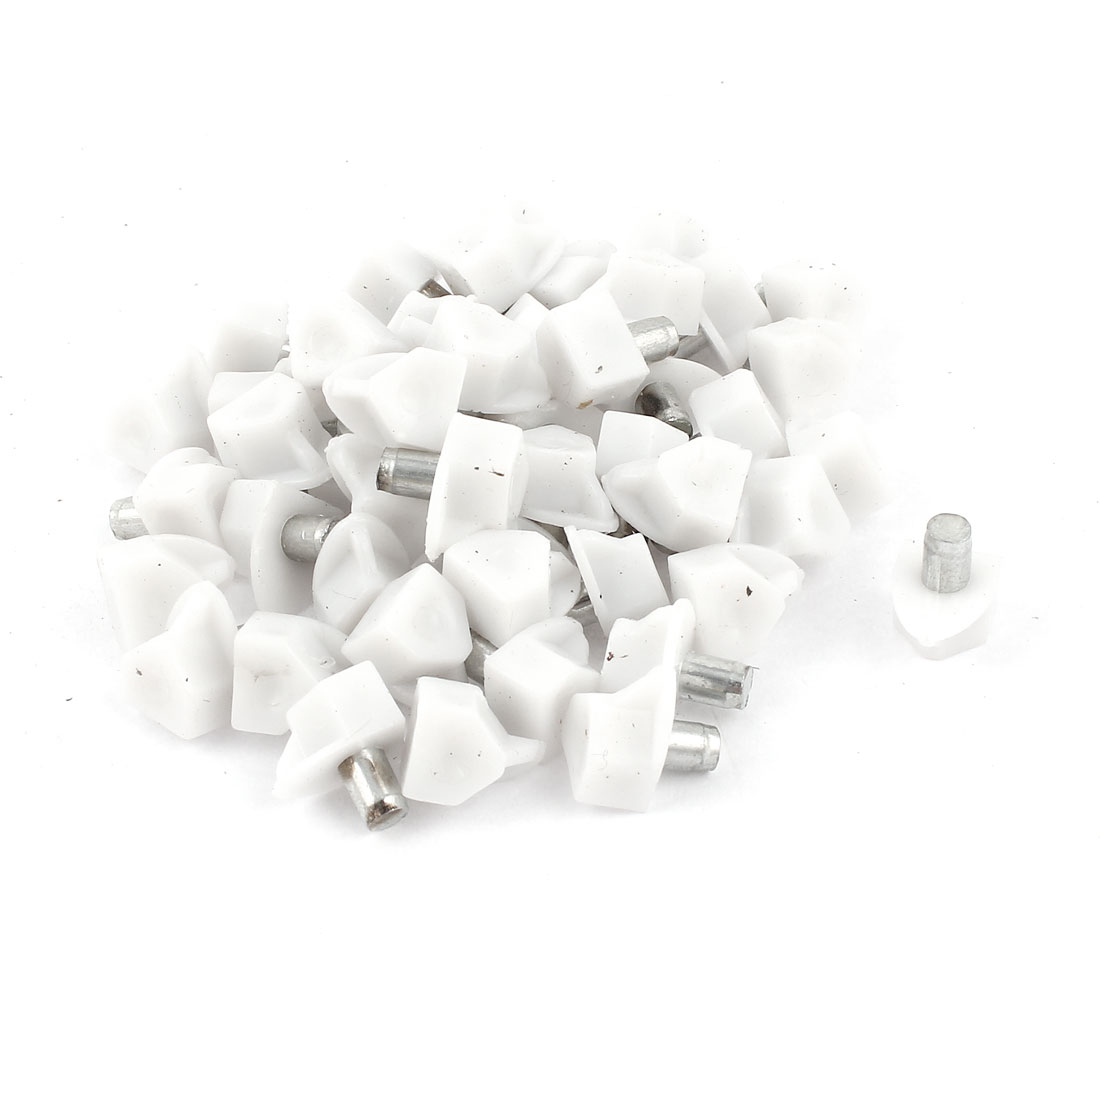 50 Pcs 5mm Metal Pin White Plastic Shelf Glass Support Studs Peg